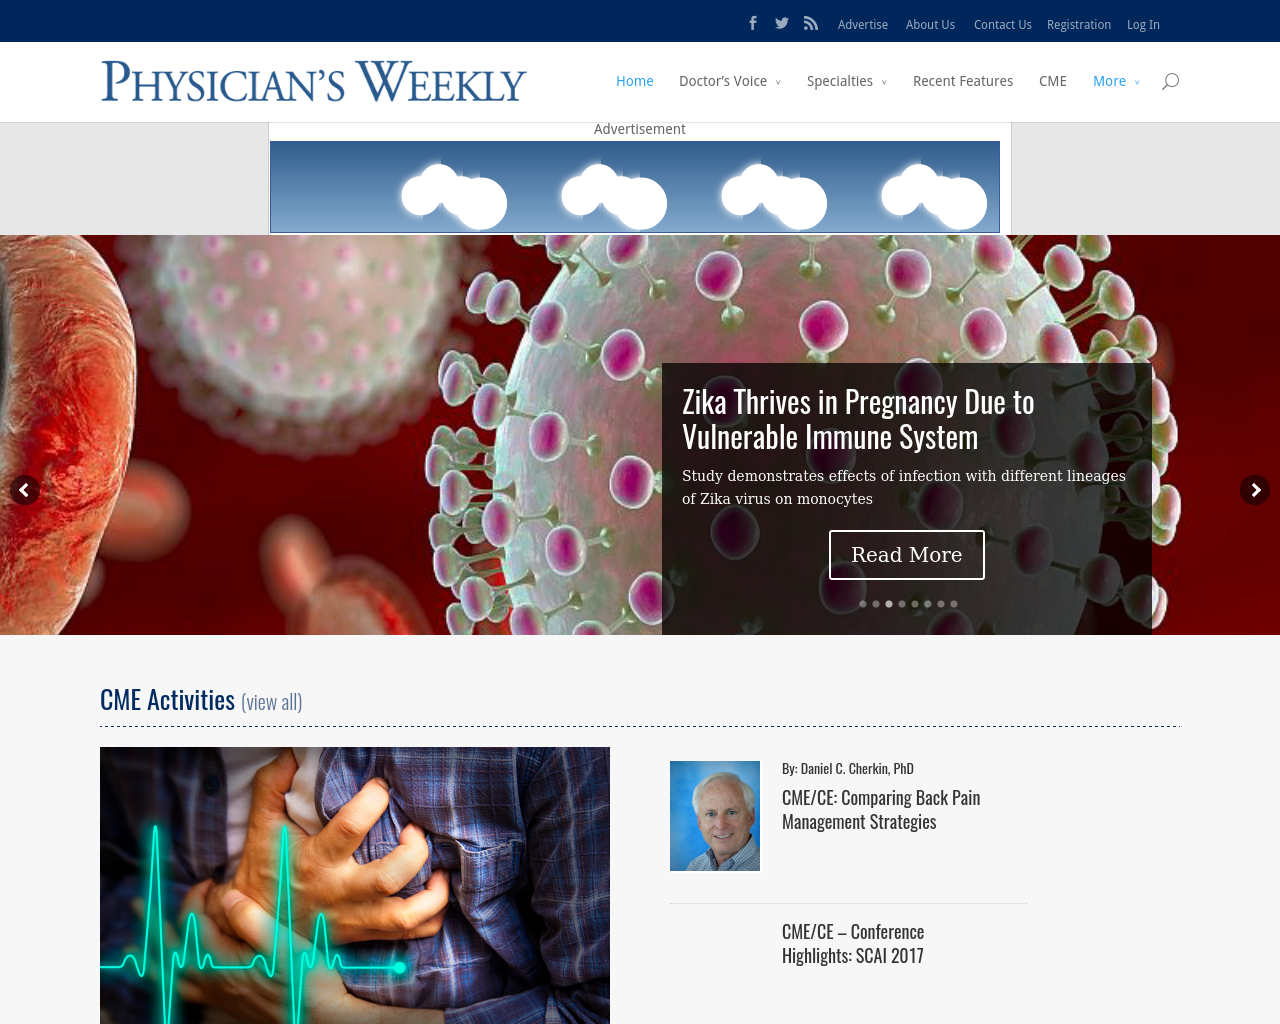 Physician's-Weekly-Advertising-Reviews-Pricing